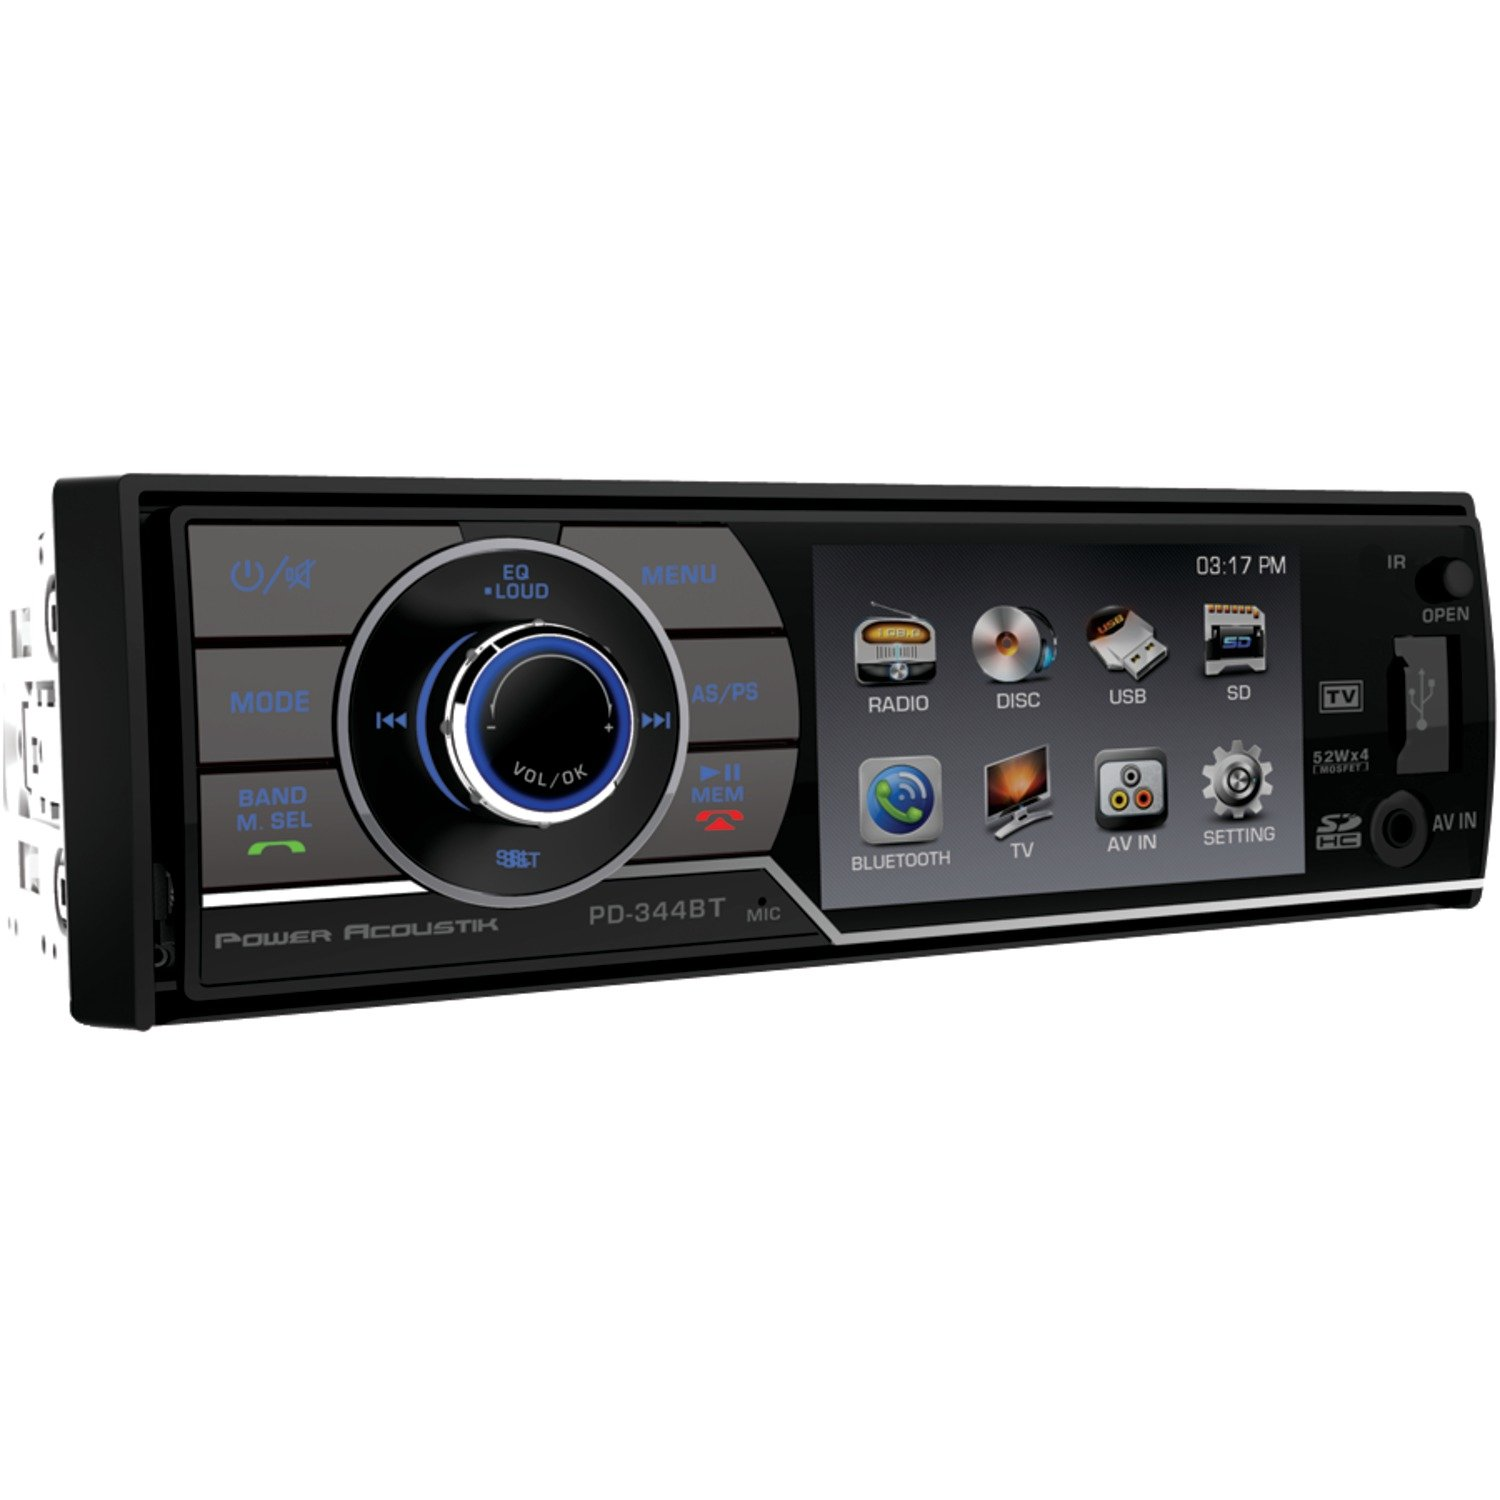 Amazon.com : POWER ACOUSTIK PD-344B In-Dash Single DIN DVD AM/FM Receiver with 3.4-Inch LCD HD Monitor, Bluetooth and USB/SD Input